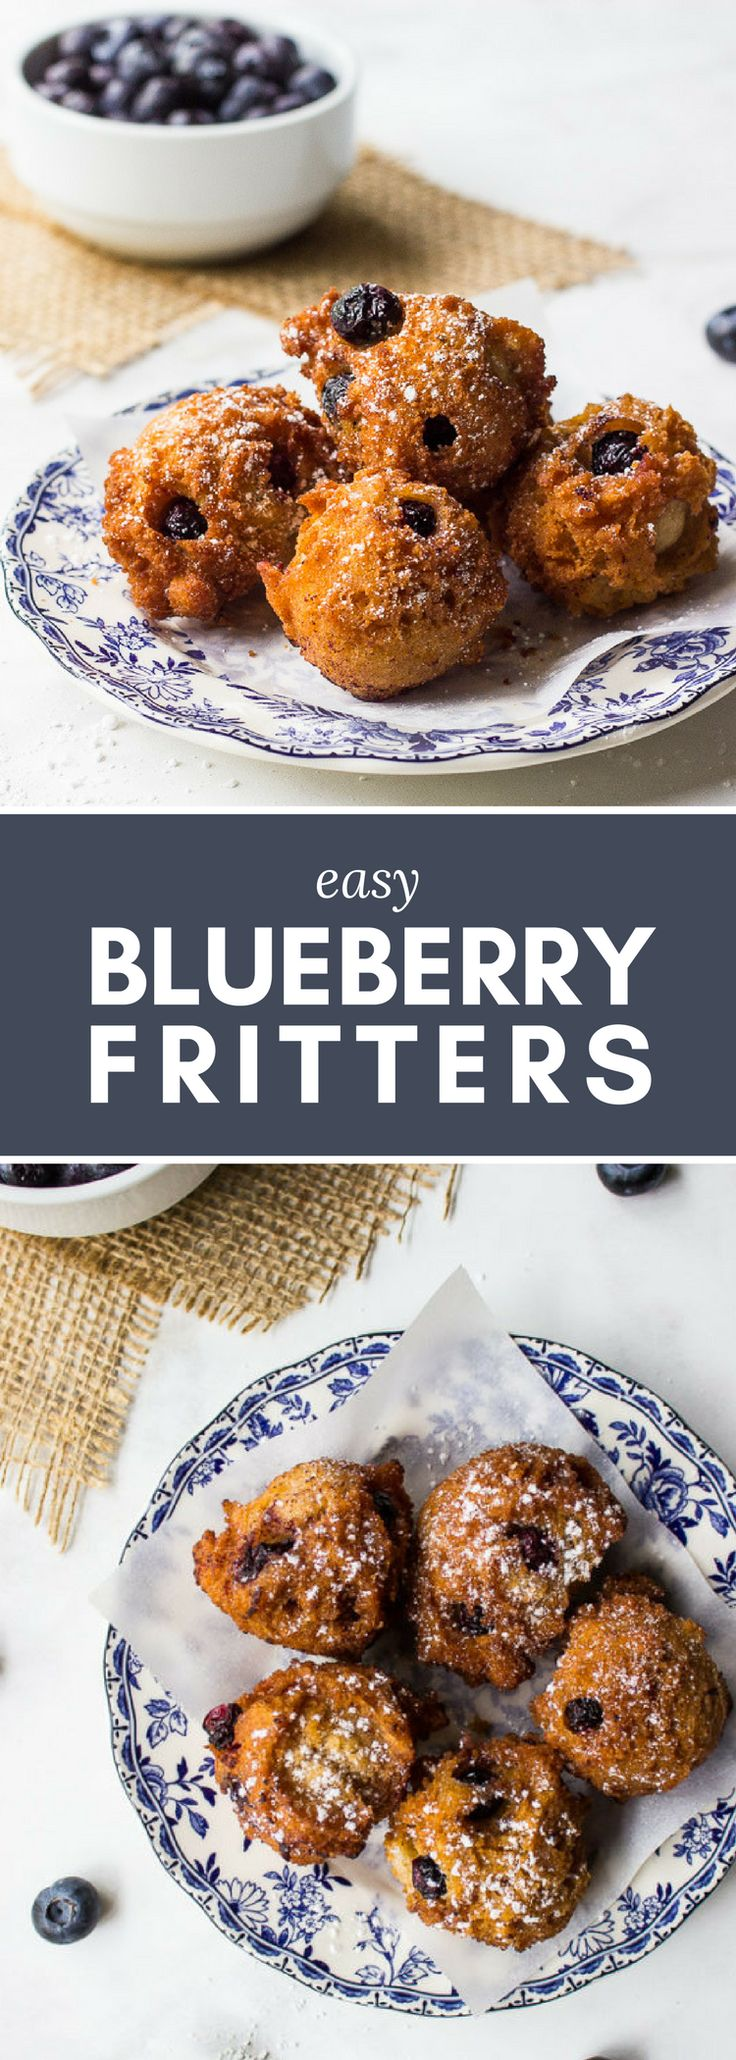 Lovely for breakfast, brunch, or dessert!! Serve with a dusting of powdered sugar or a dollop of whipped cream. // Easy Blueberry Fritters Recipe